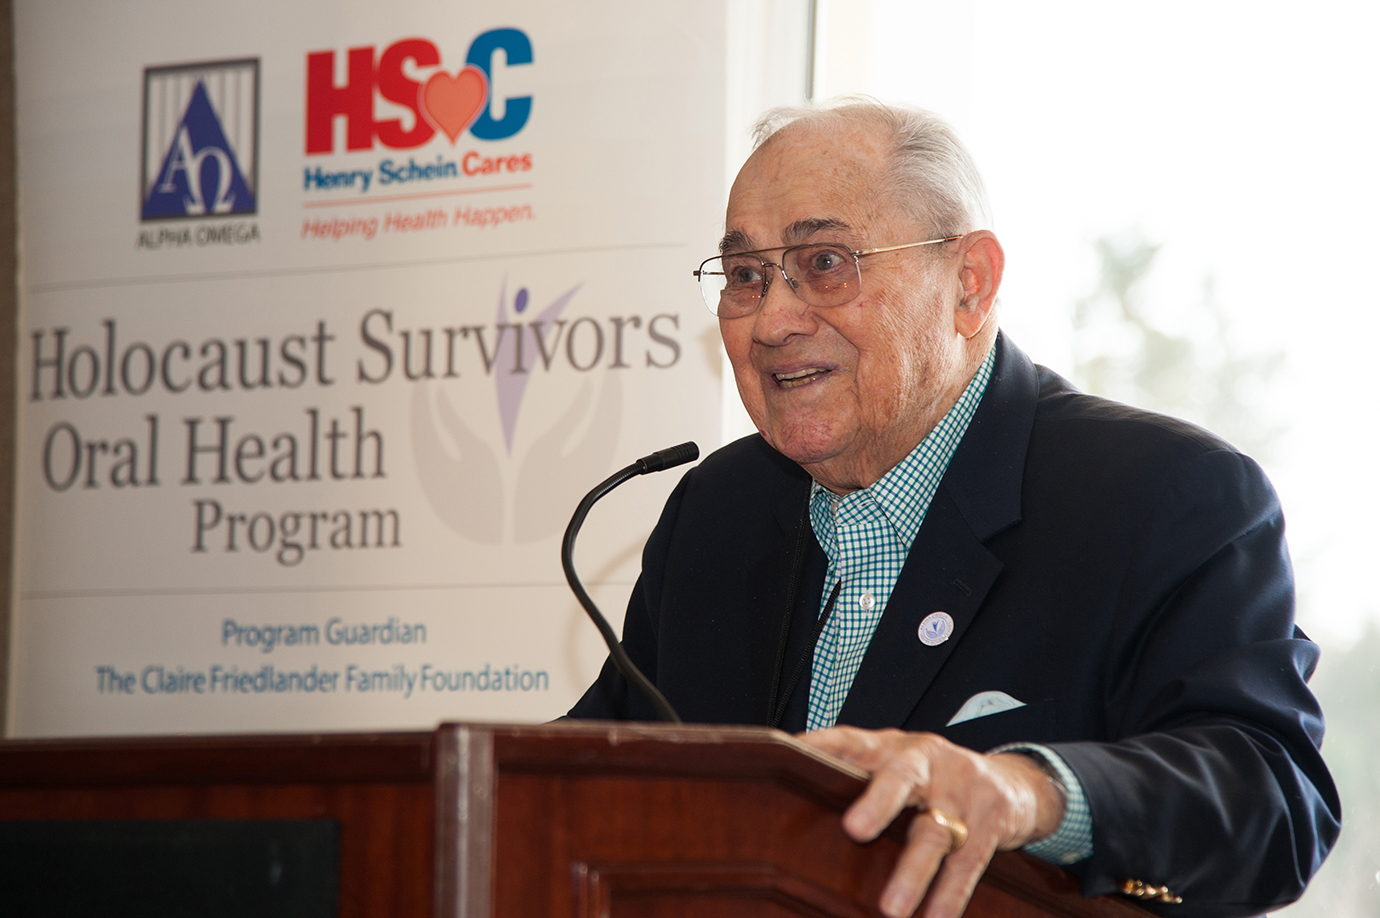 Alpha Omega-Henry Schein Cares Holocaust Survivors Oral Health program recognized the Washington, DC chapter of the Alpha Omega International Dental Fraternity